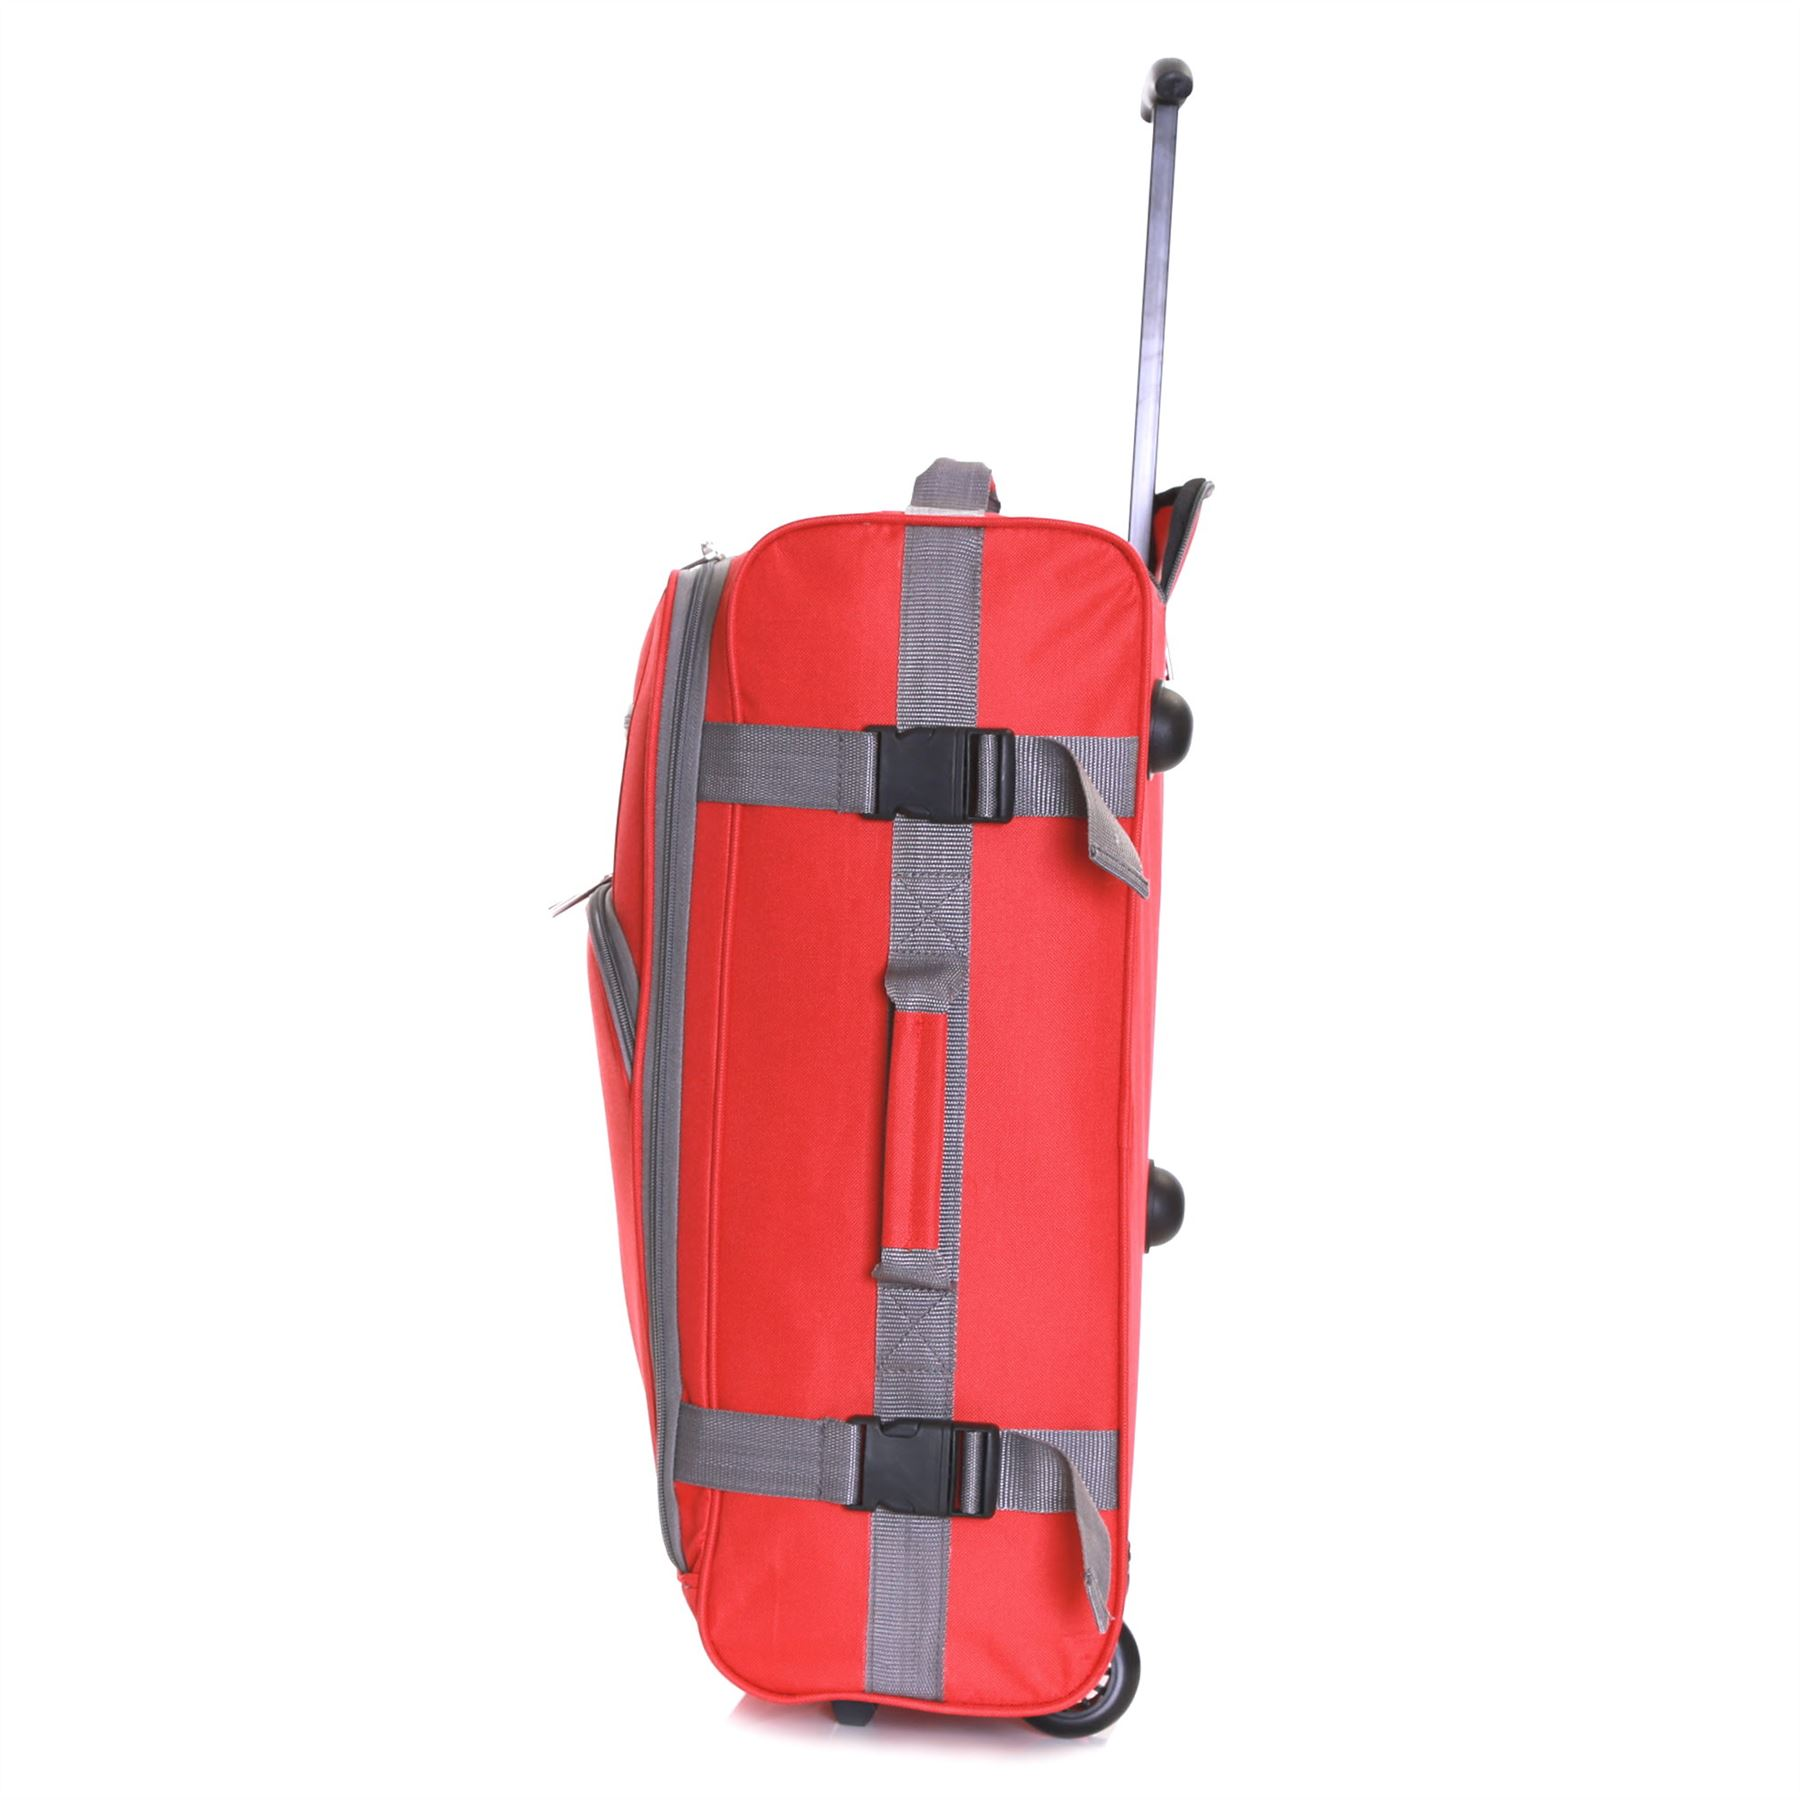 Ryanair-Easyjet-Set-of-2-Cabin-Approved-Hand-Trolley-Suitcases-Luggage-Case-Bags thumbnail 25